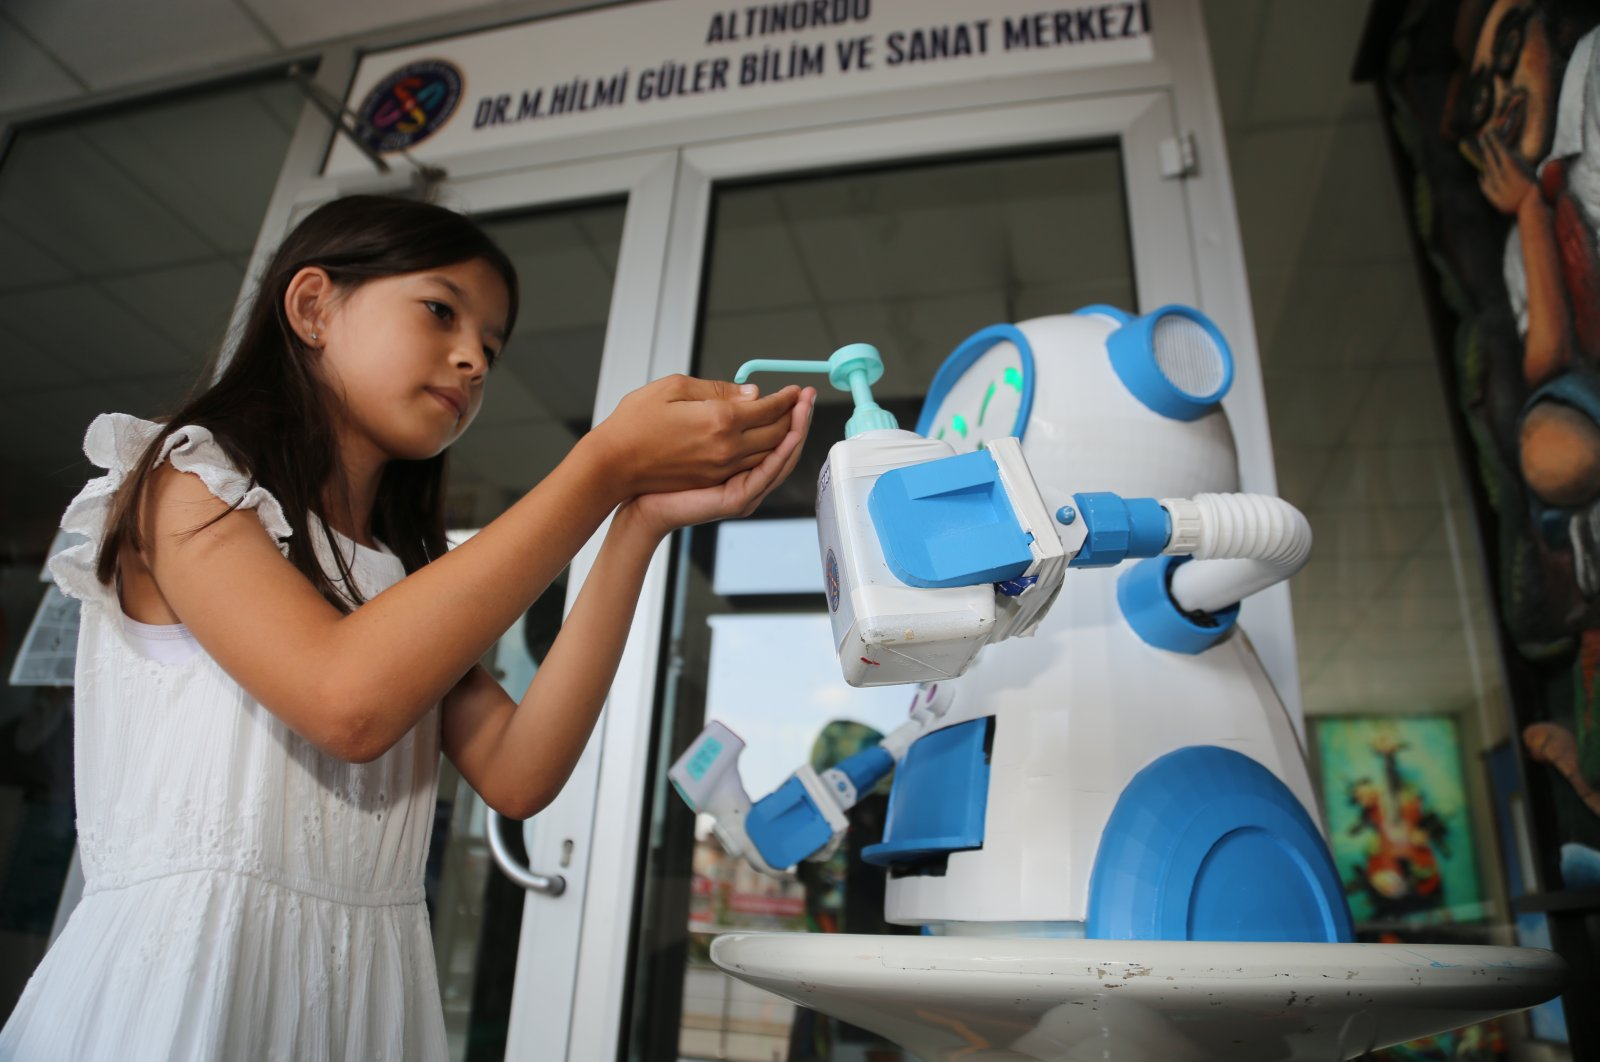 The robot pours disinfectant into the hand of a girl in Ordu, northern Turkey, Aug. 12, 2020. (AA Photo)